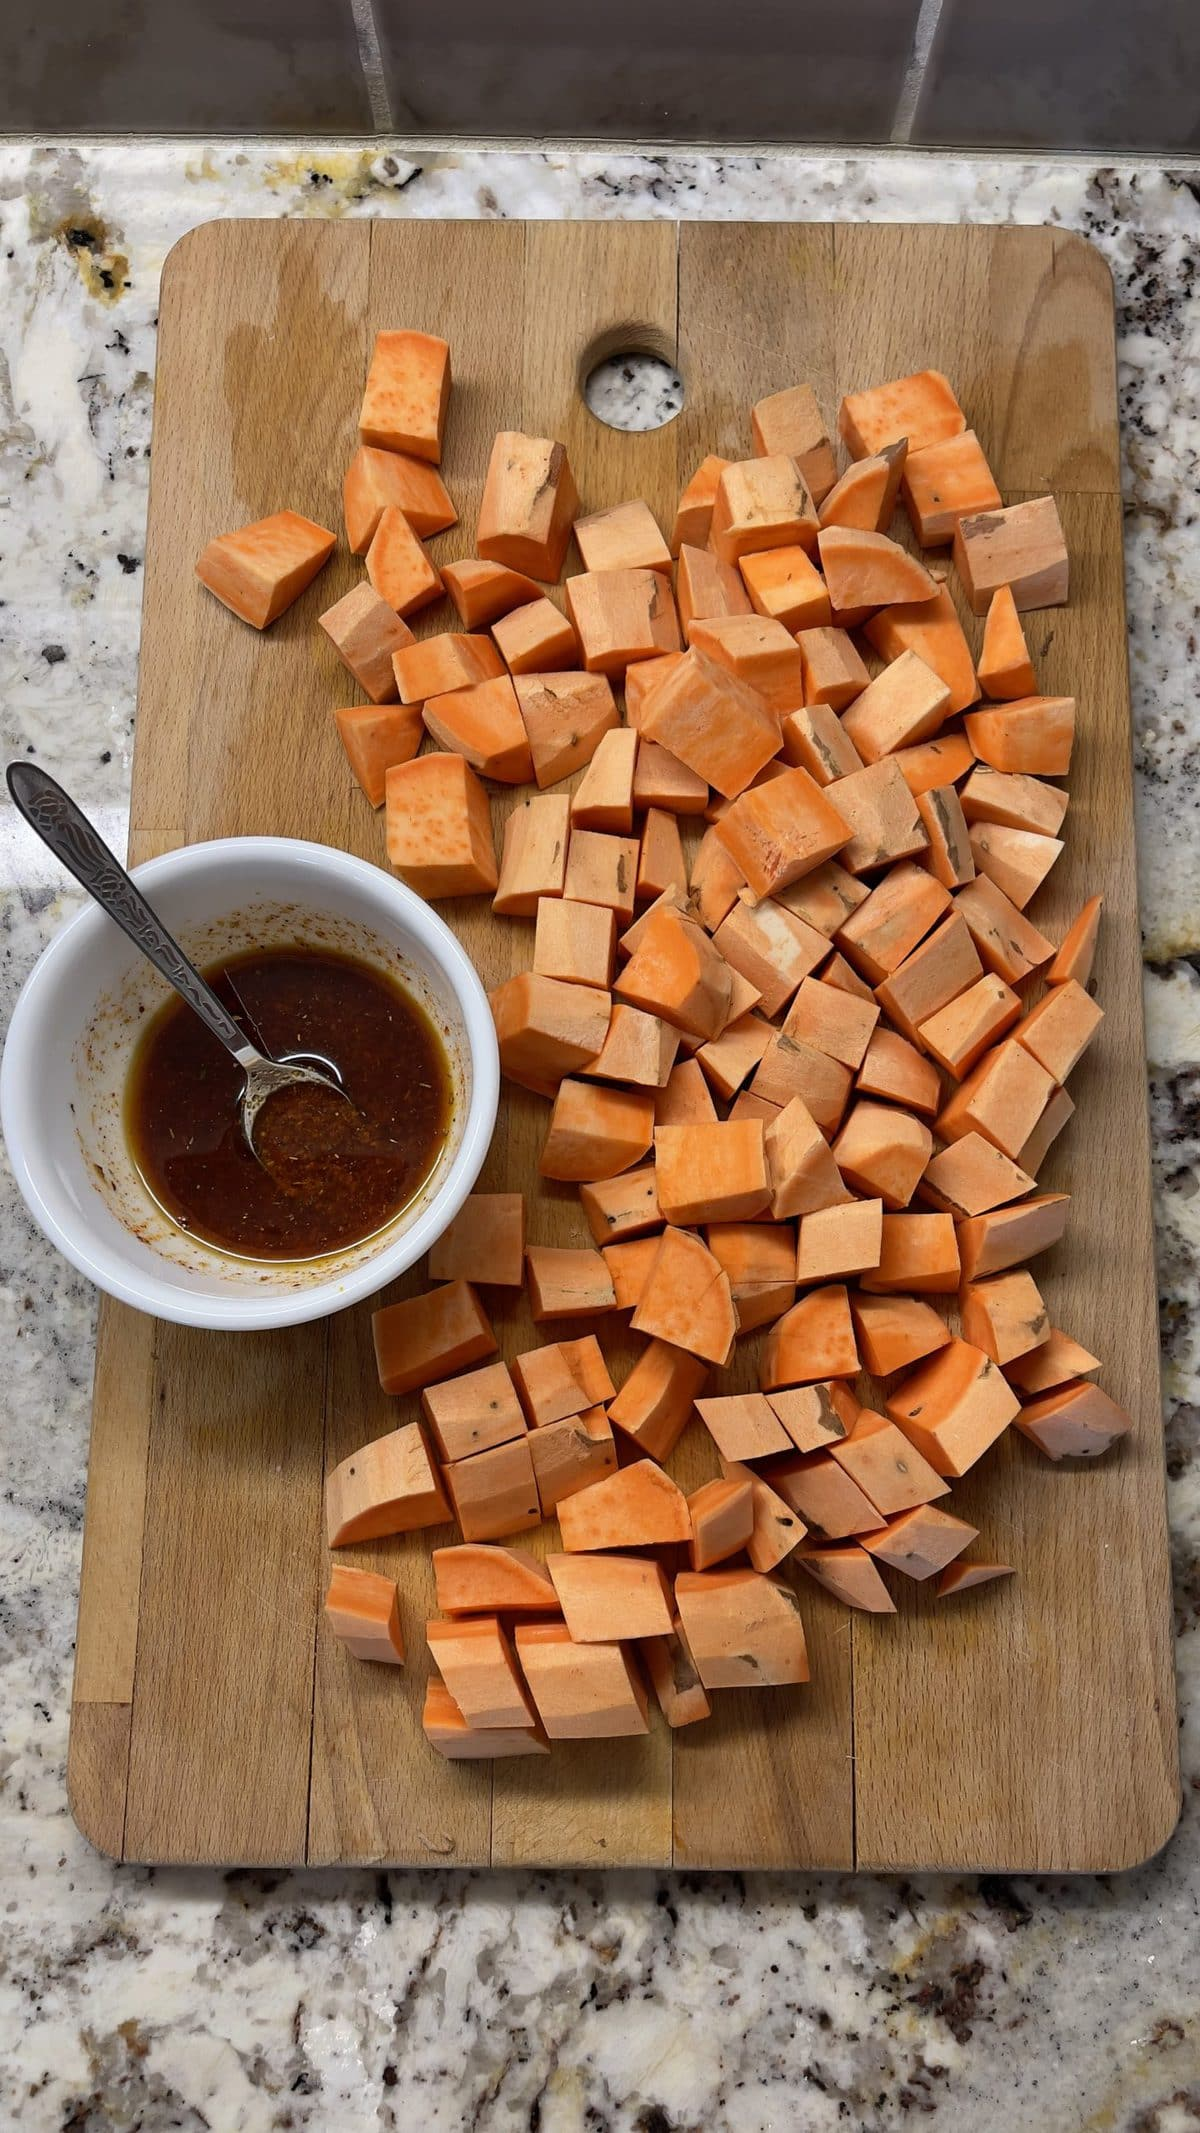 Cubed sweet potato on a cutting board with dressing on the side